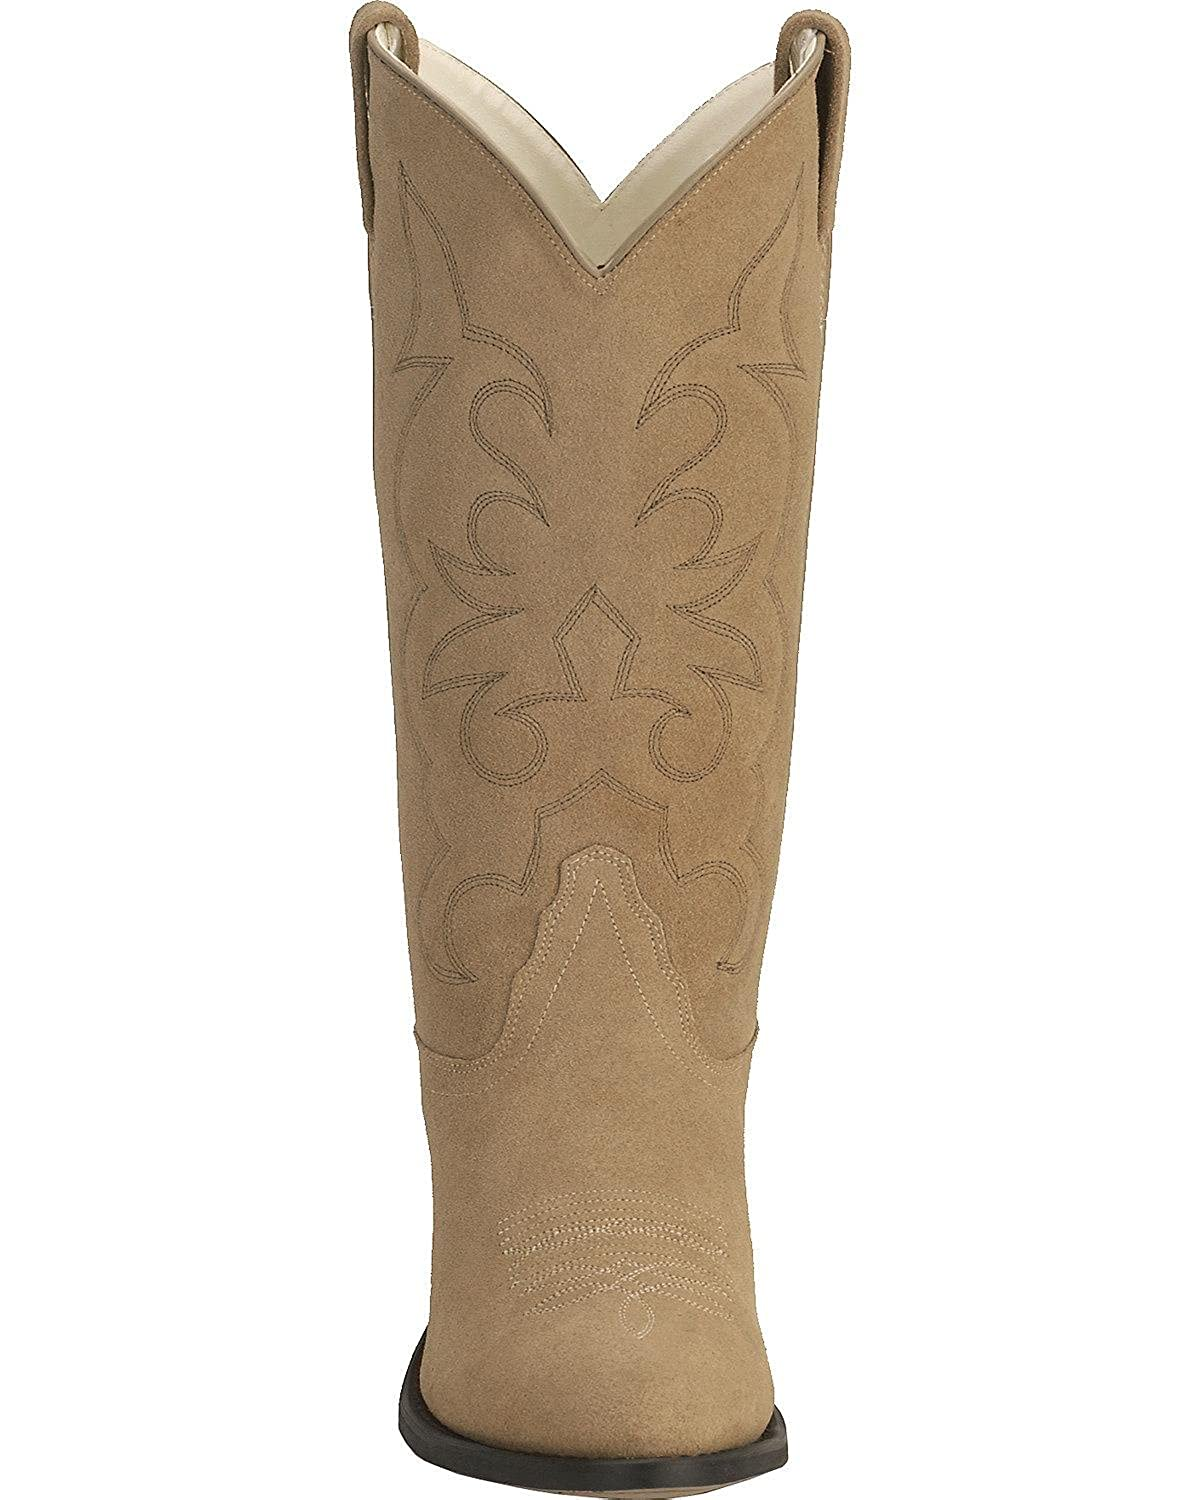 Old West Boots Mens Tbm3010